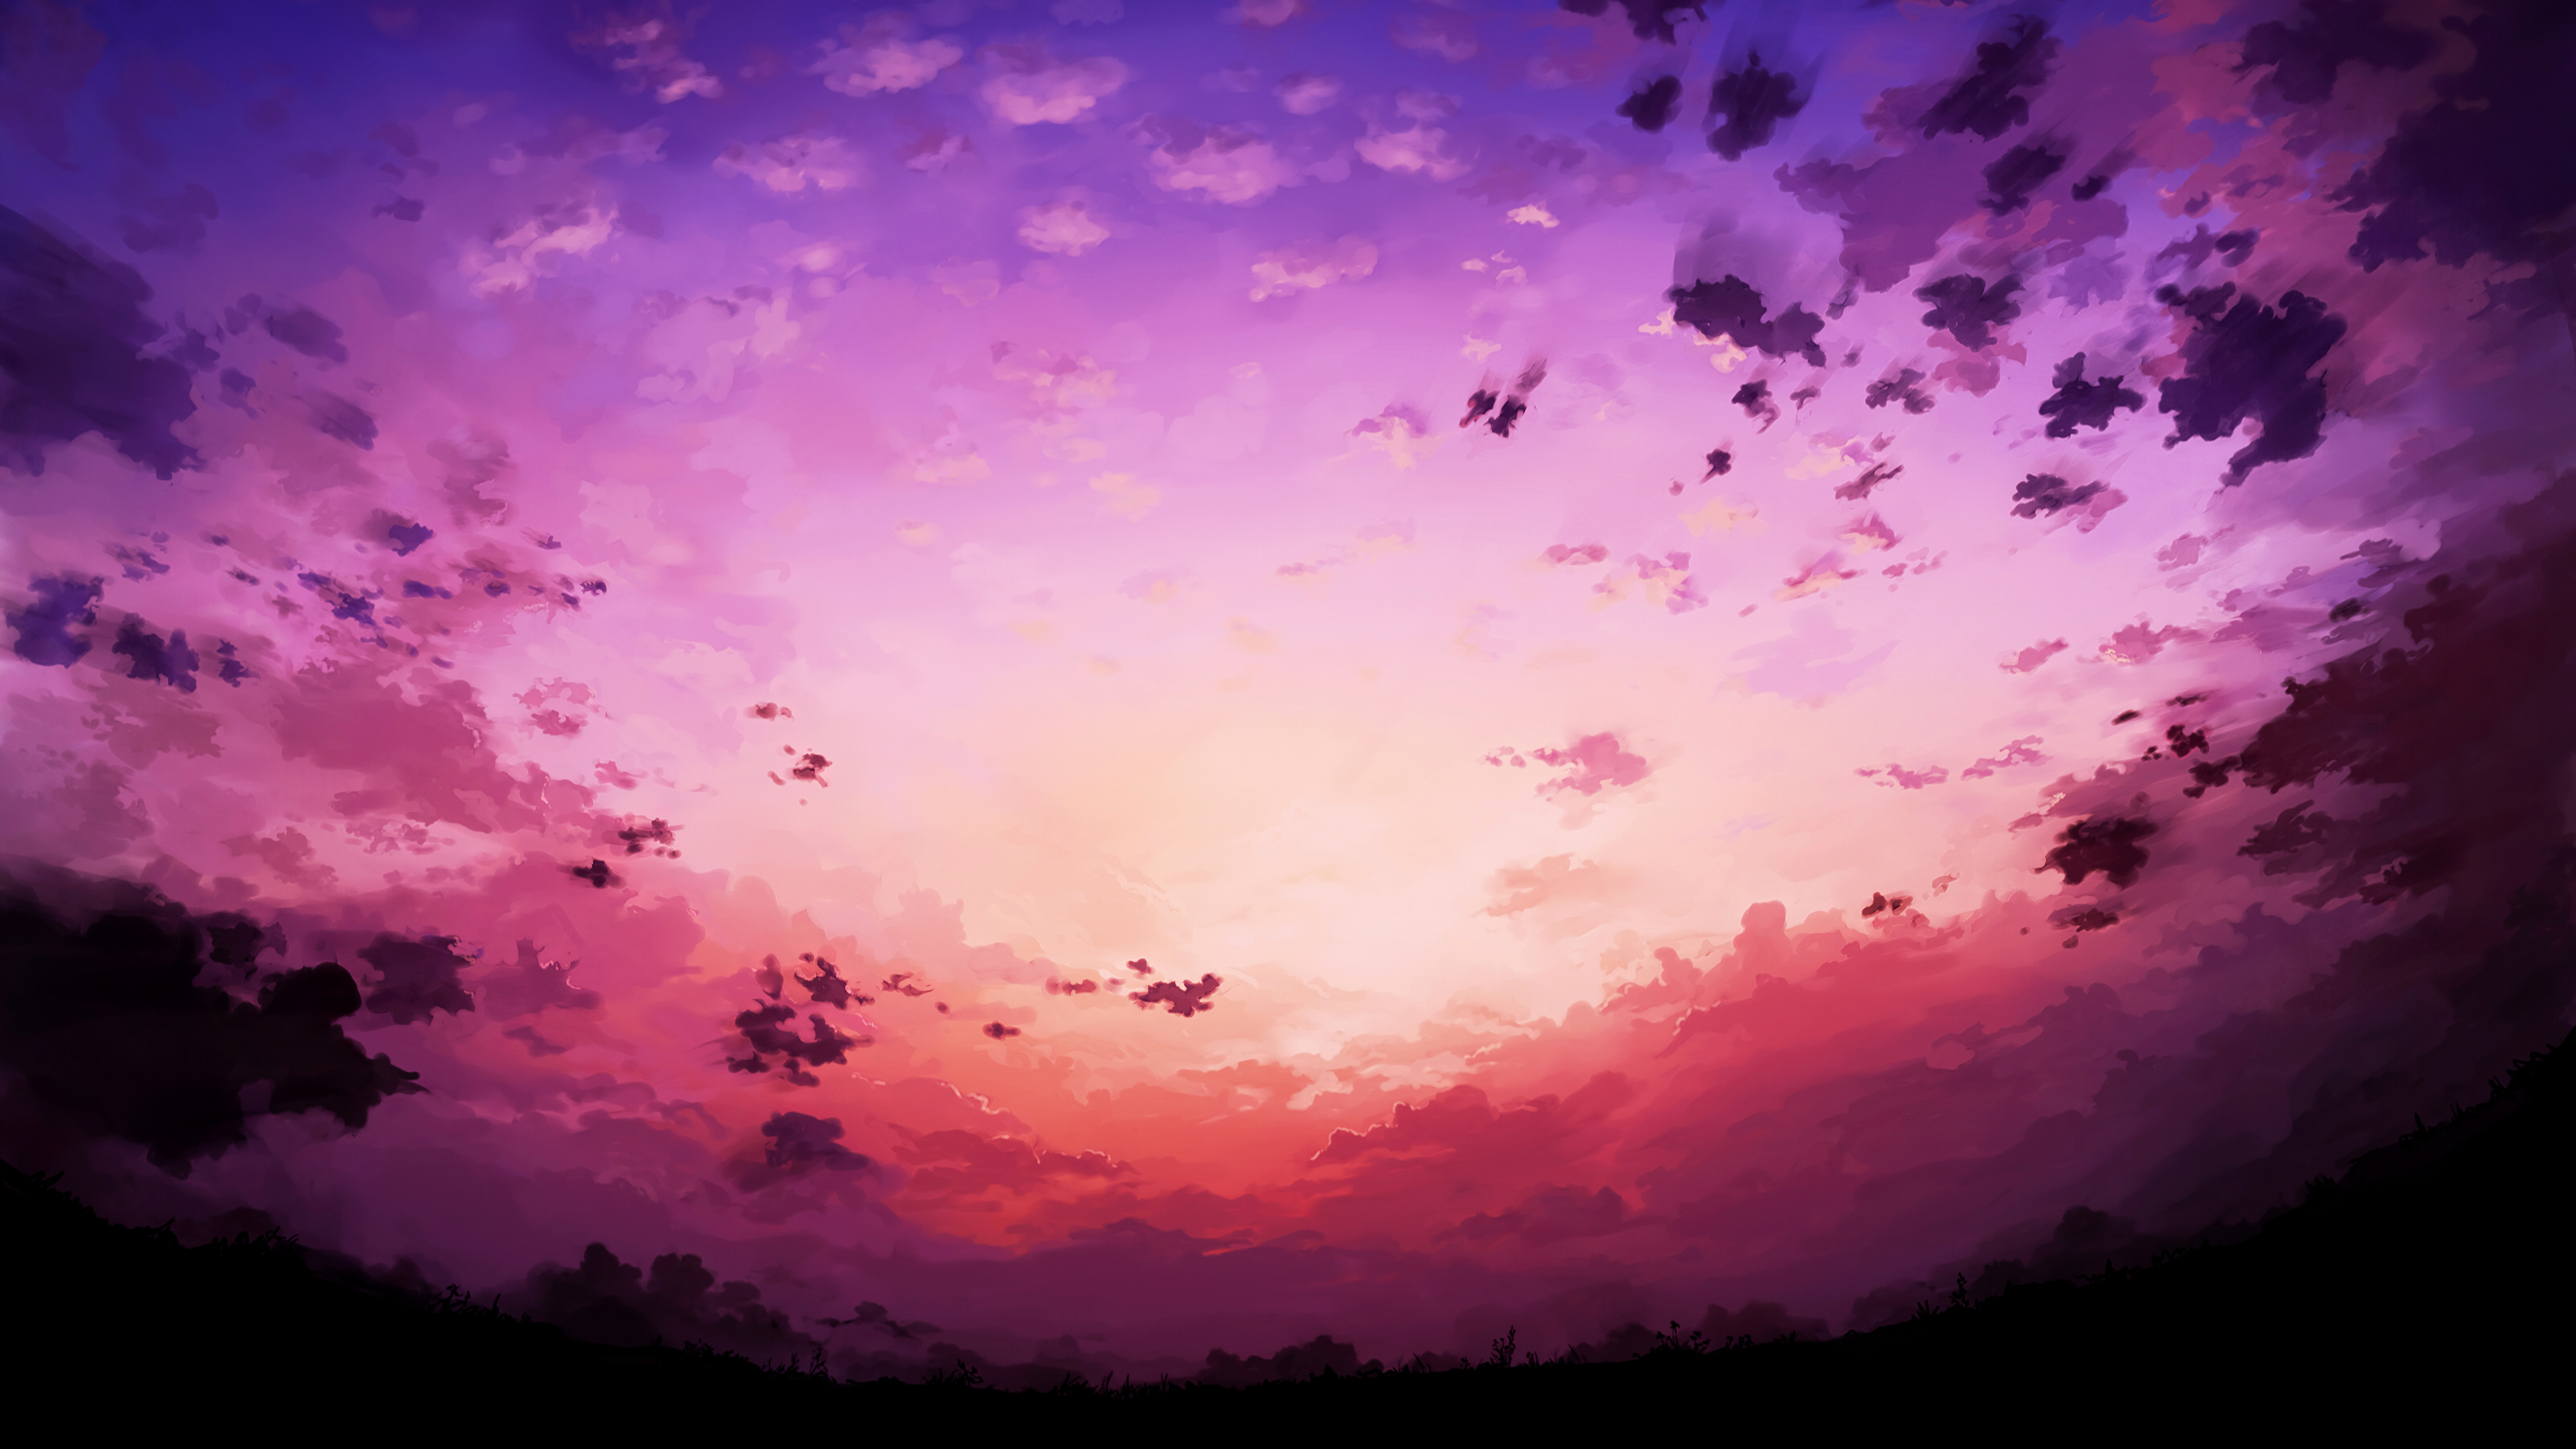 Pink Sky Horizon 4k Hd Artist 4k Wallpapers Images